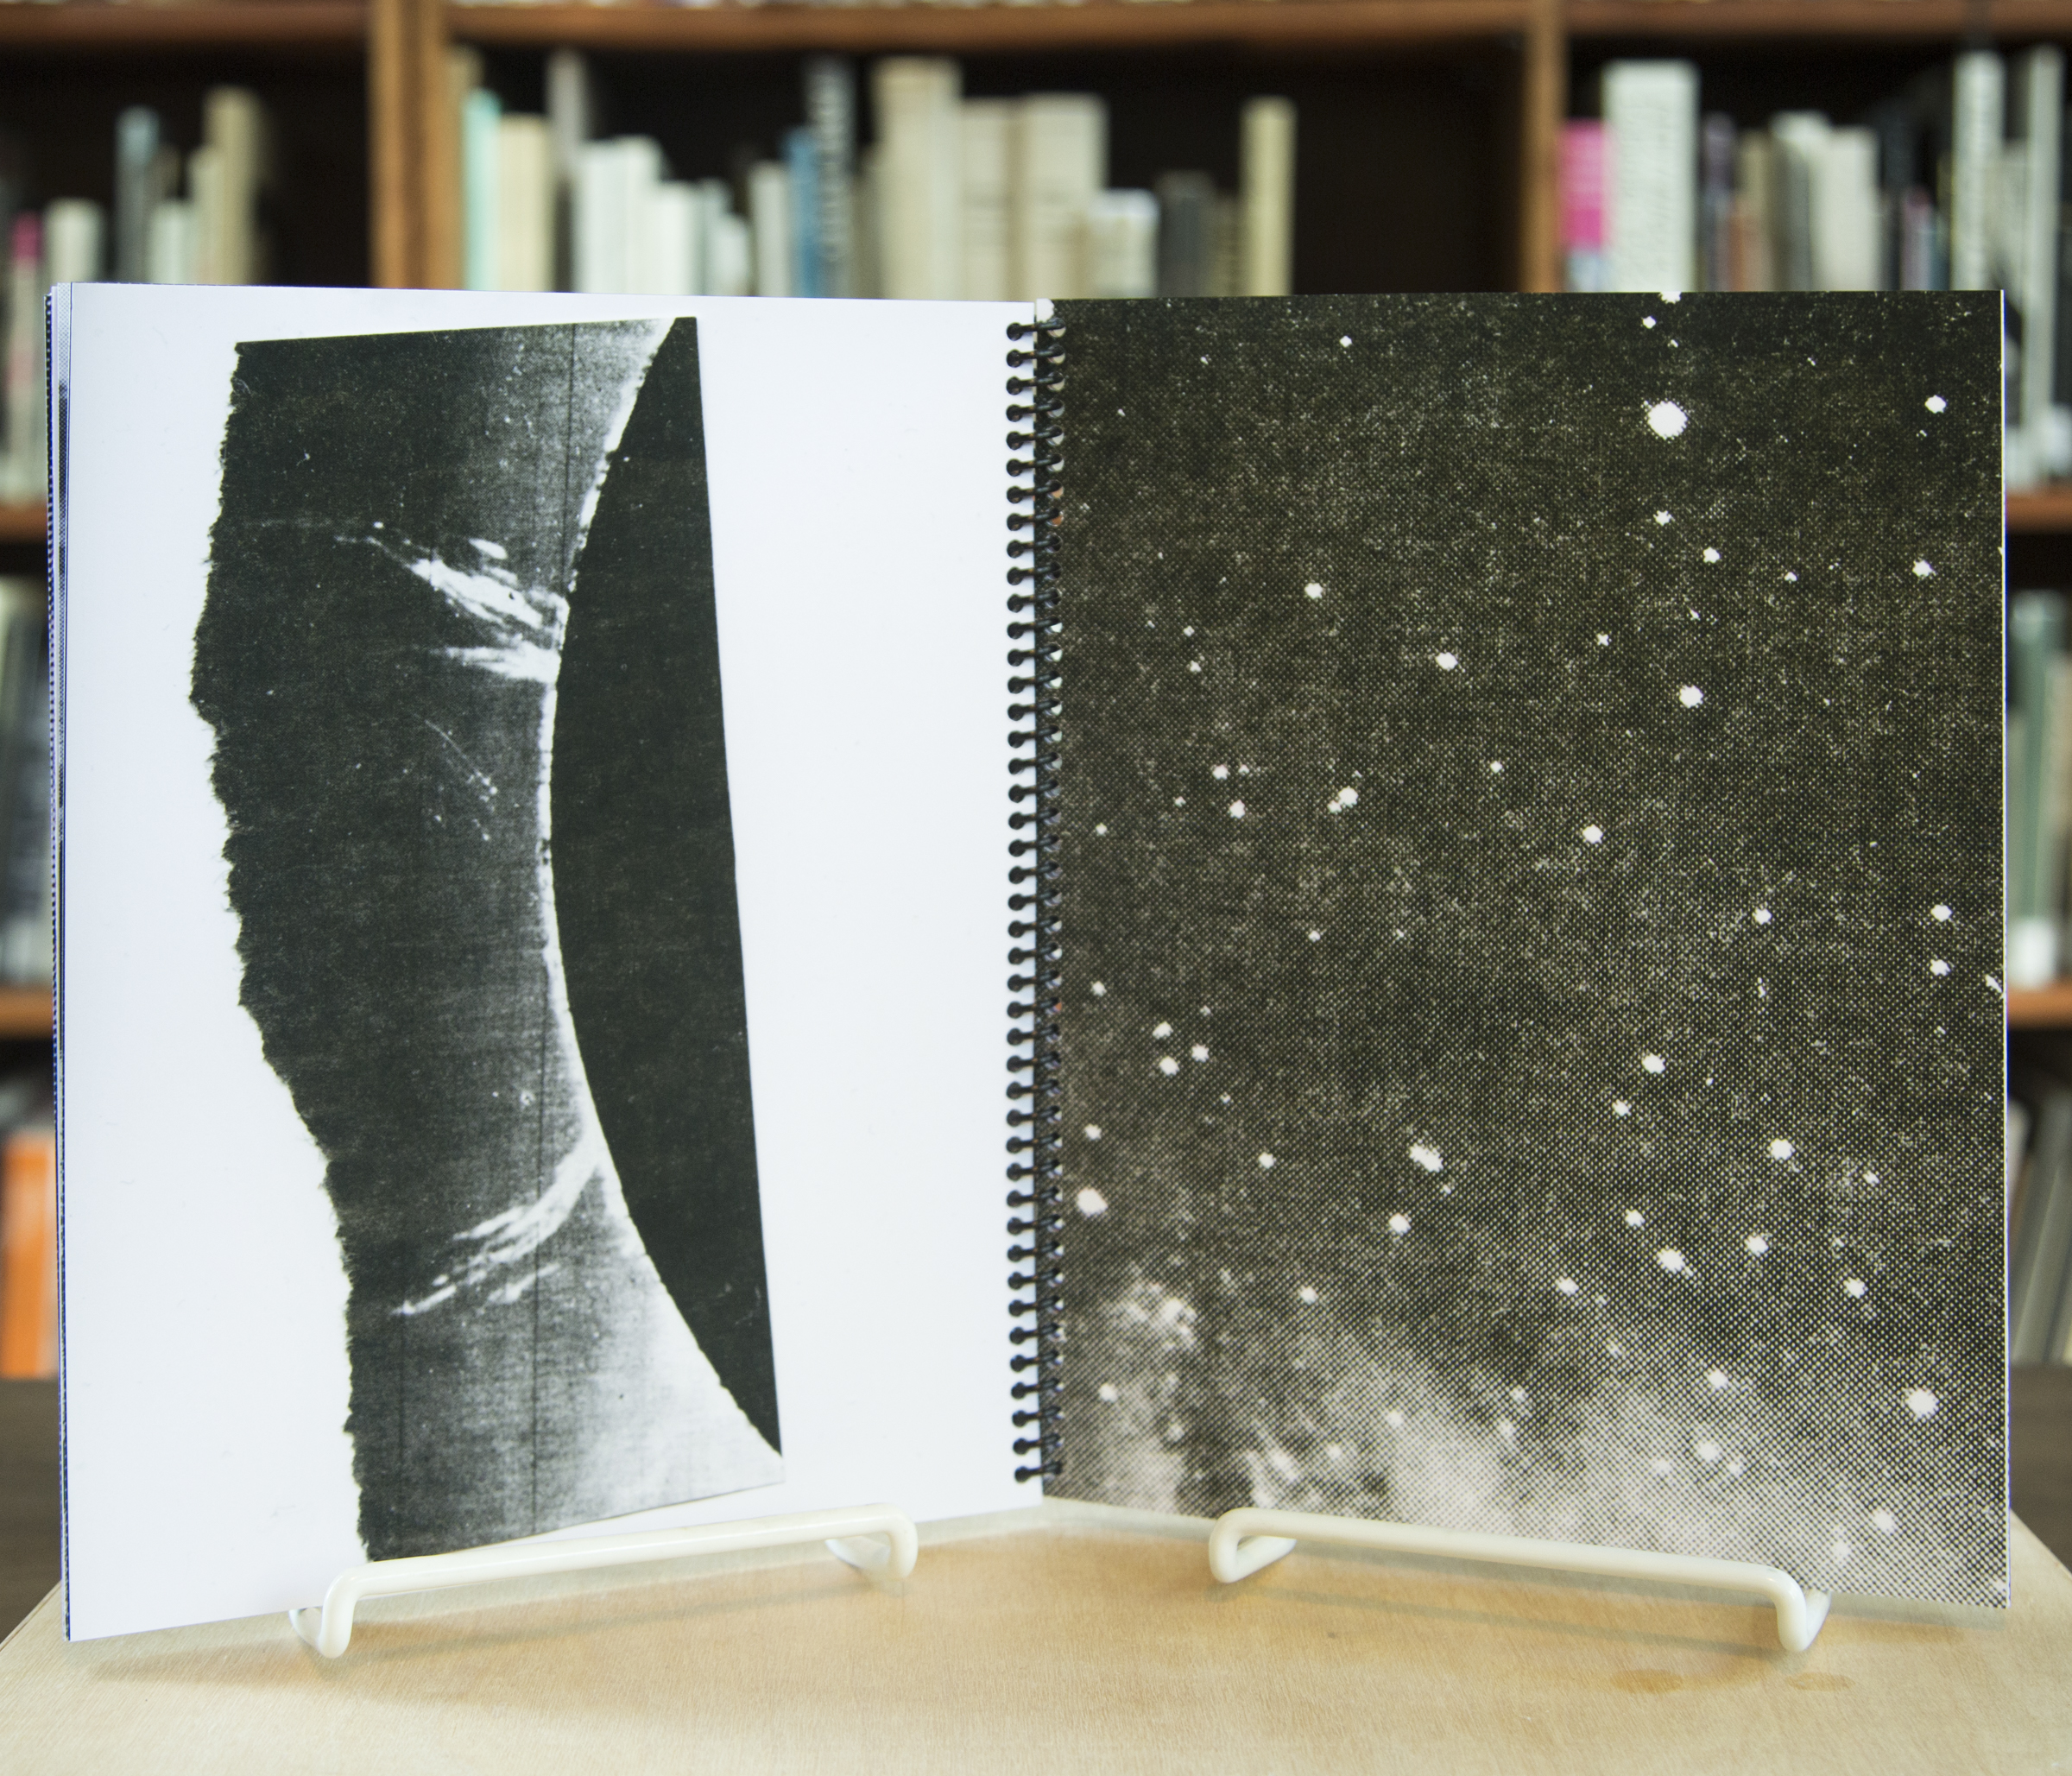 Detail from artist book